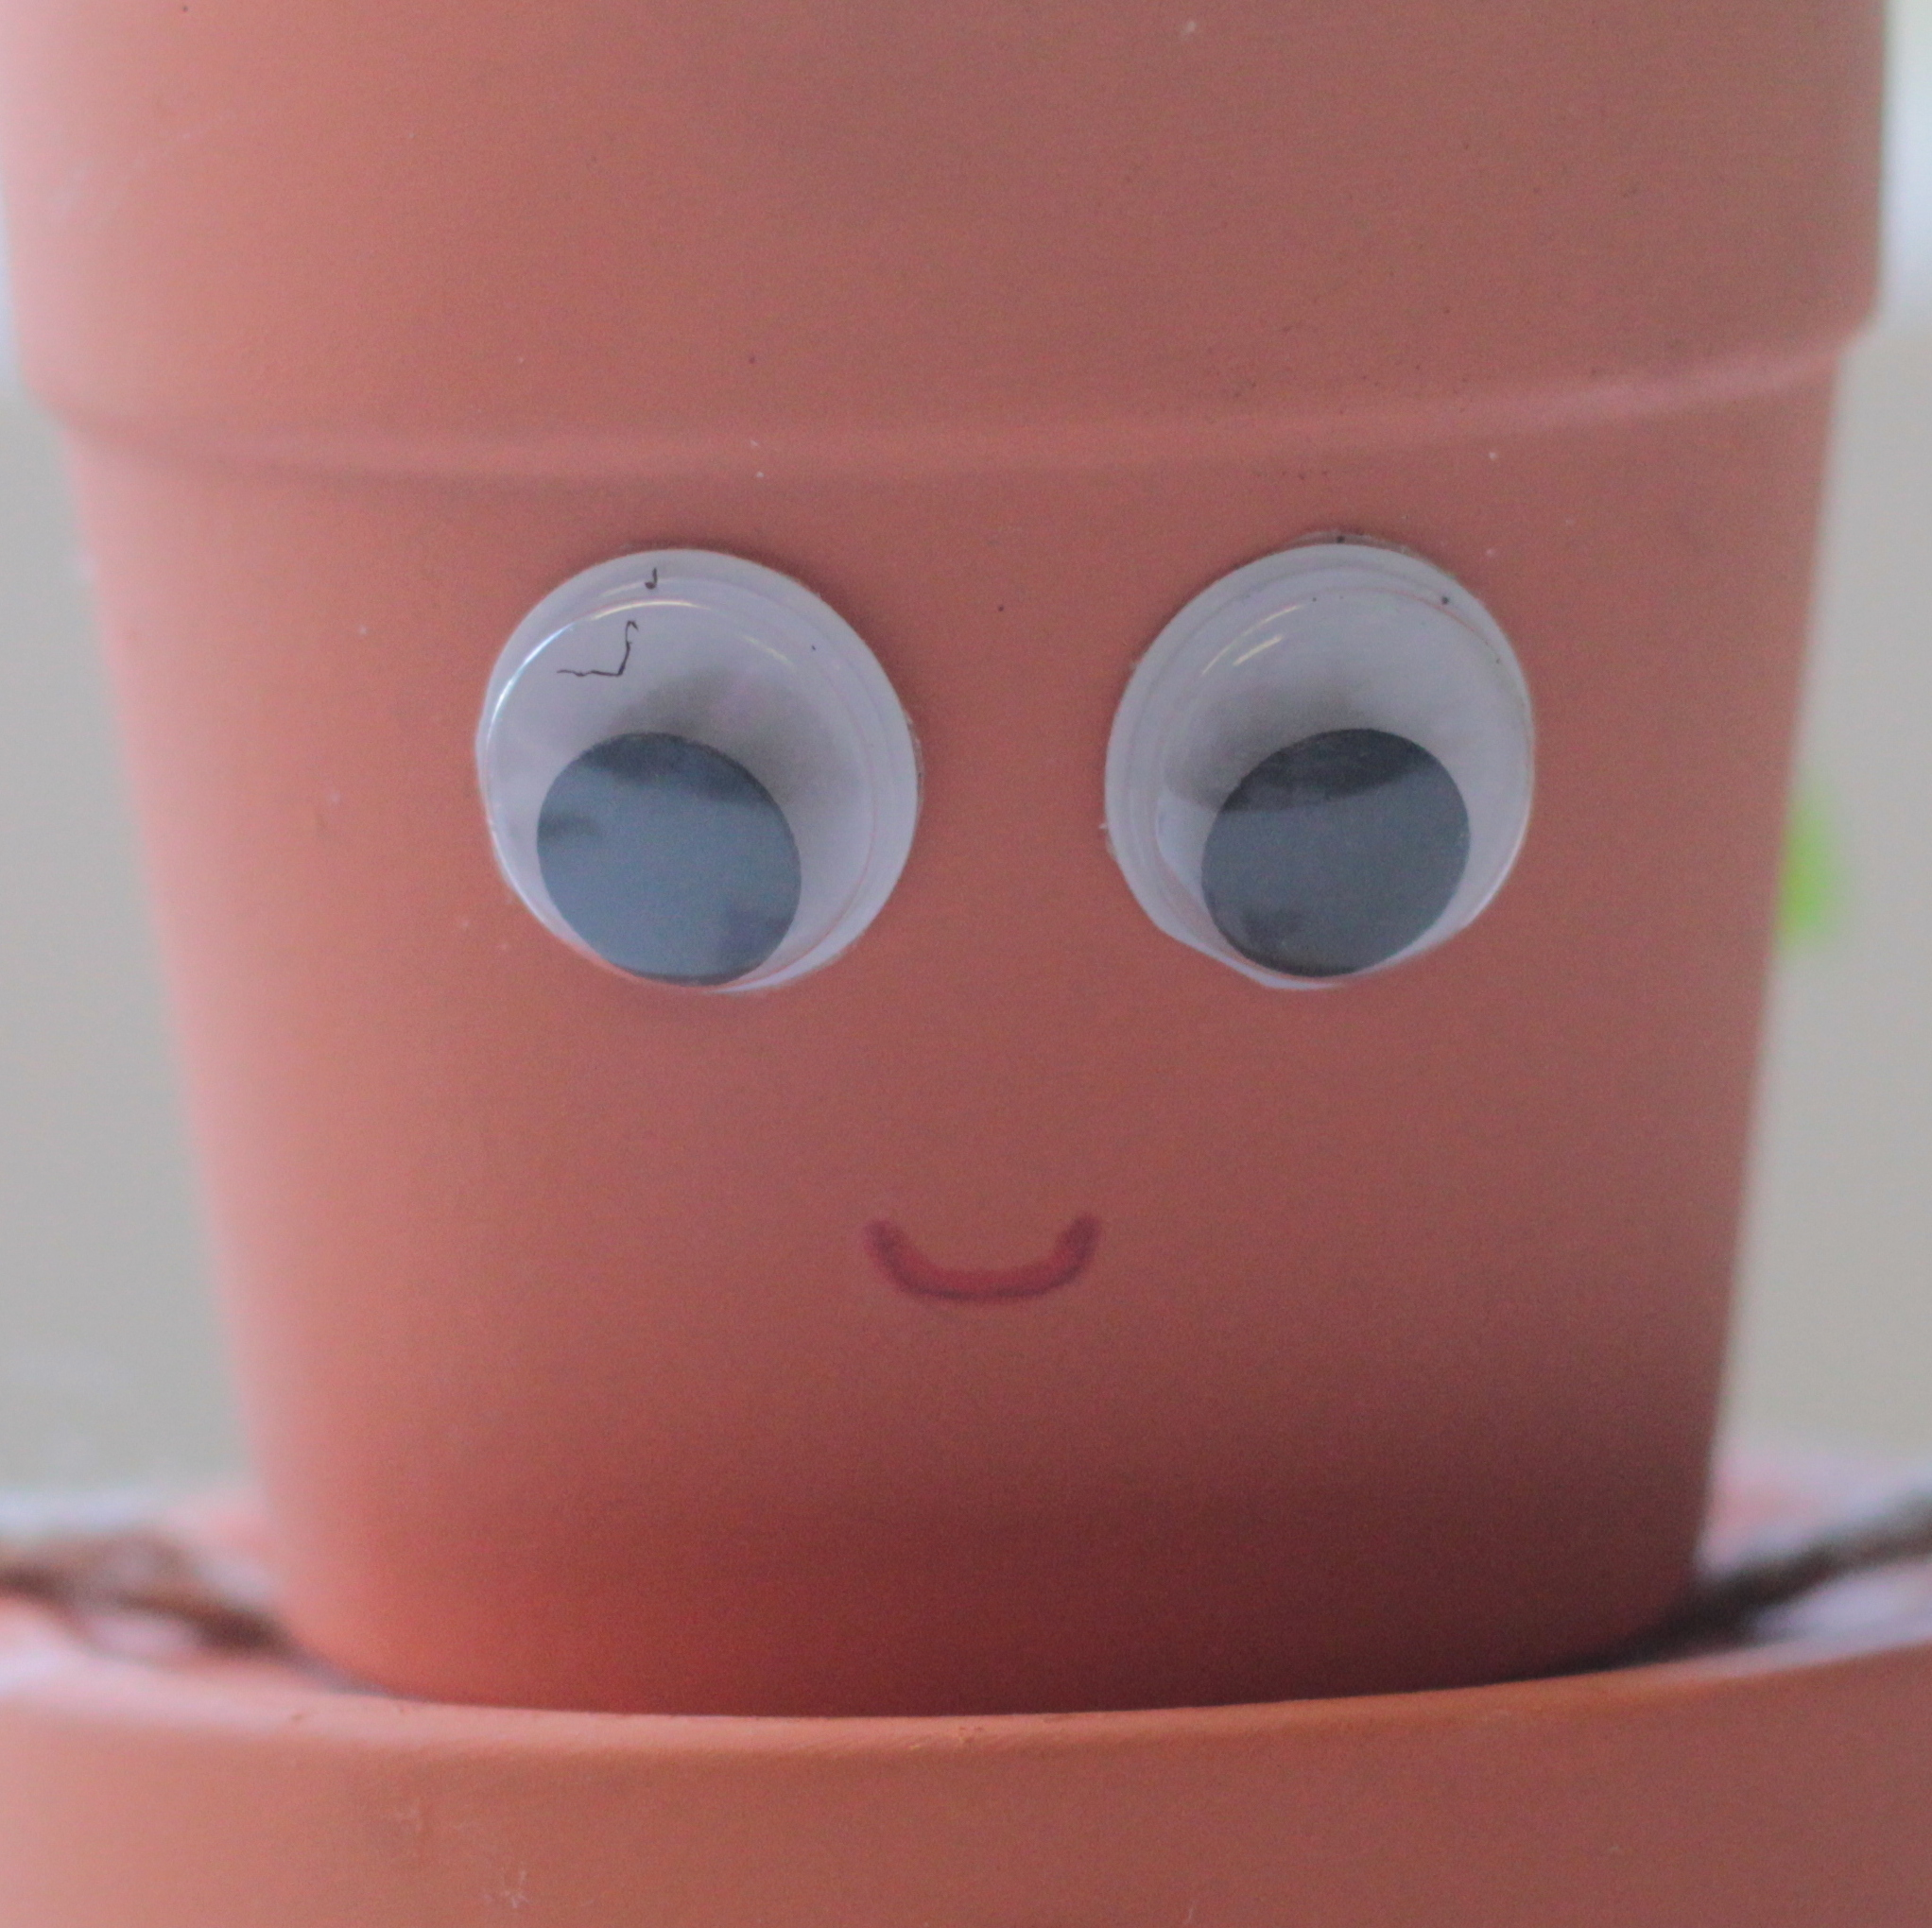 How to Make Flower Pot People #flowerpot #diy #gardencraft